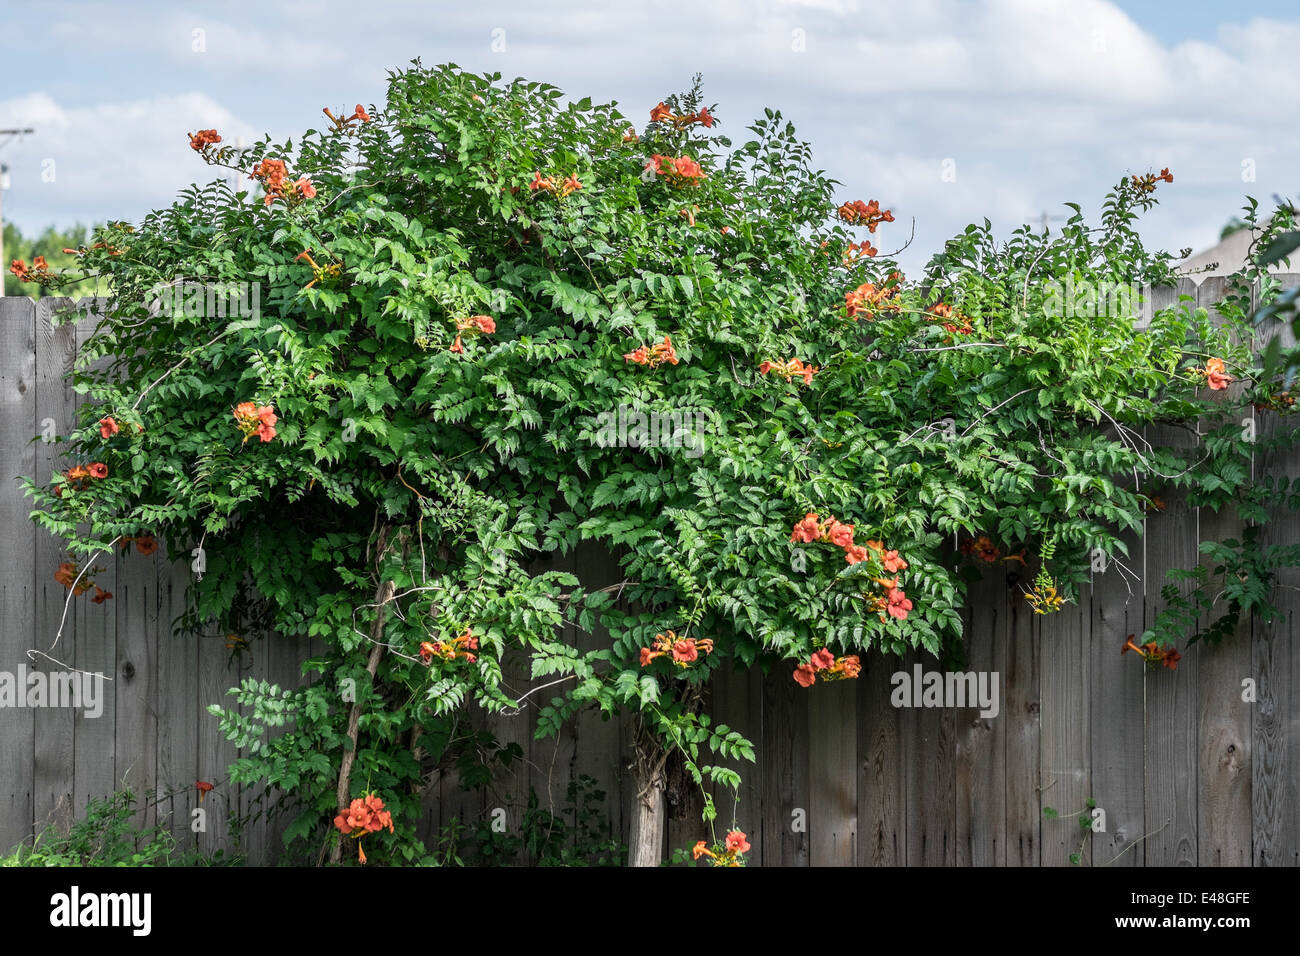 a trumpet vine campsis radicans against a wooden fence usa stock photo royalty free image. Black Bedroom Furniture Sets. Home Design Ideas